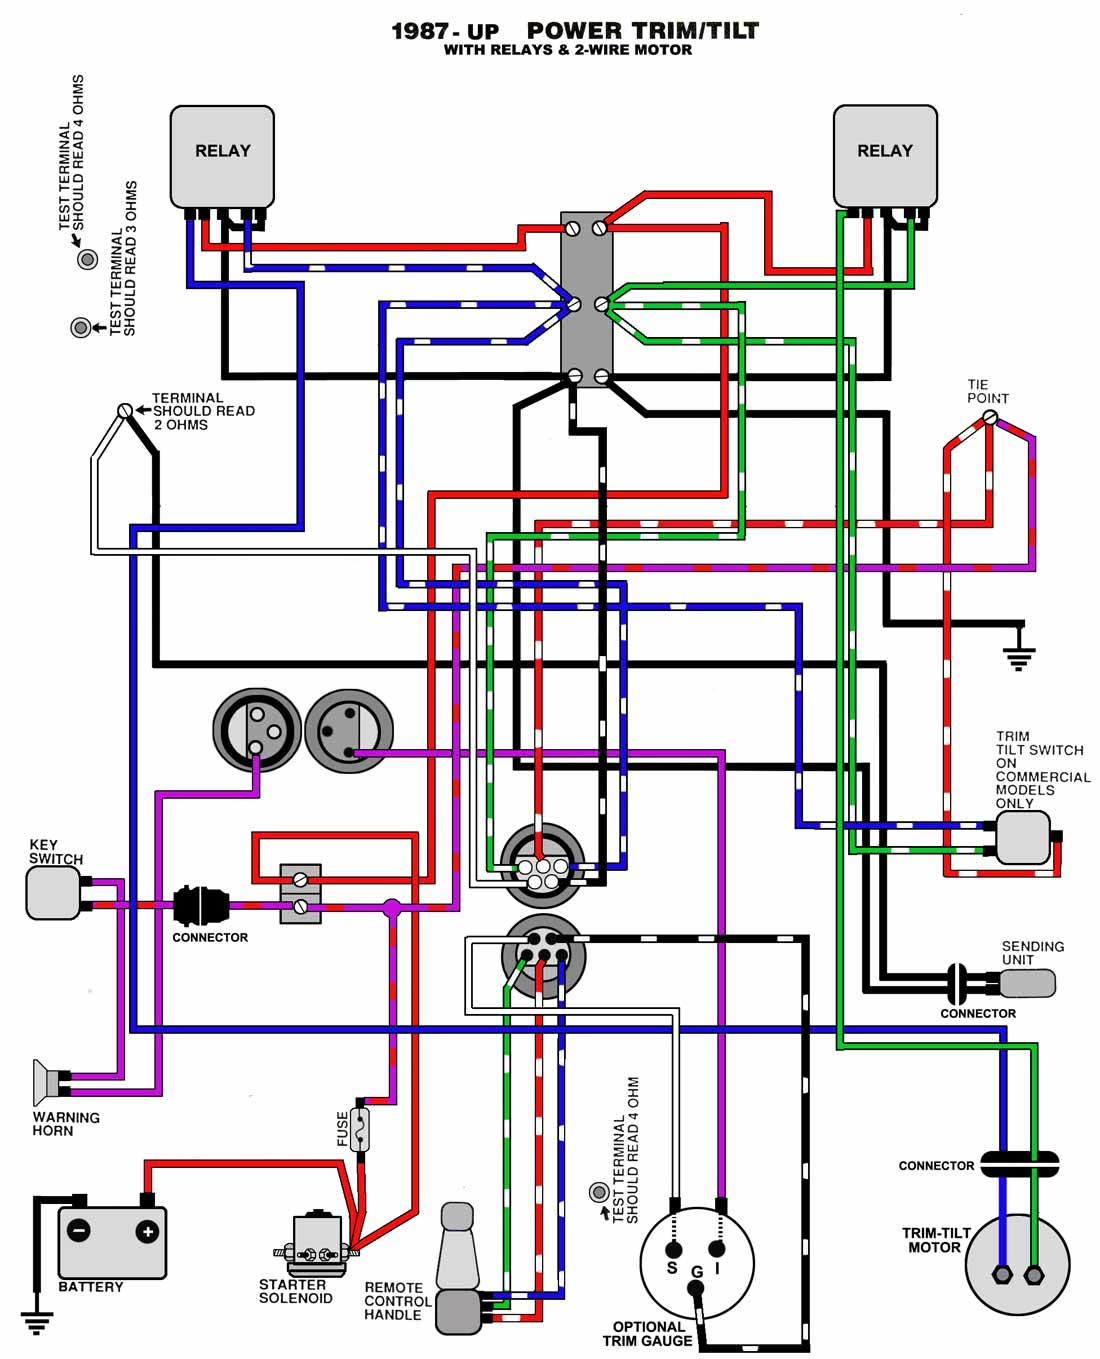 johnson outboard tilt trim diagram 11 4 malawi24 de \u2022 Johnson Outboard Key Switch common outboard motor trim and tilt system wiring diagrams rh maxrules com diagram mercury tilt and trim omc trim tilt system diagram